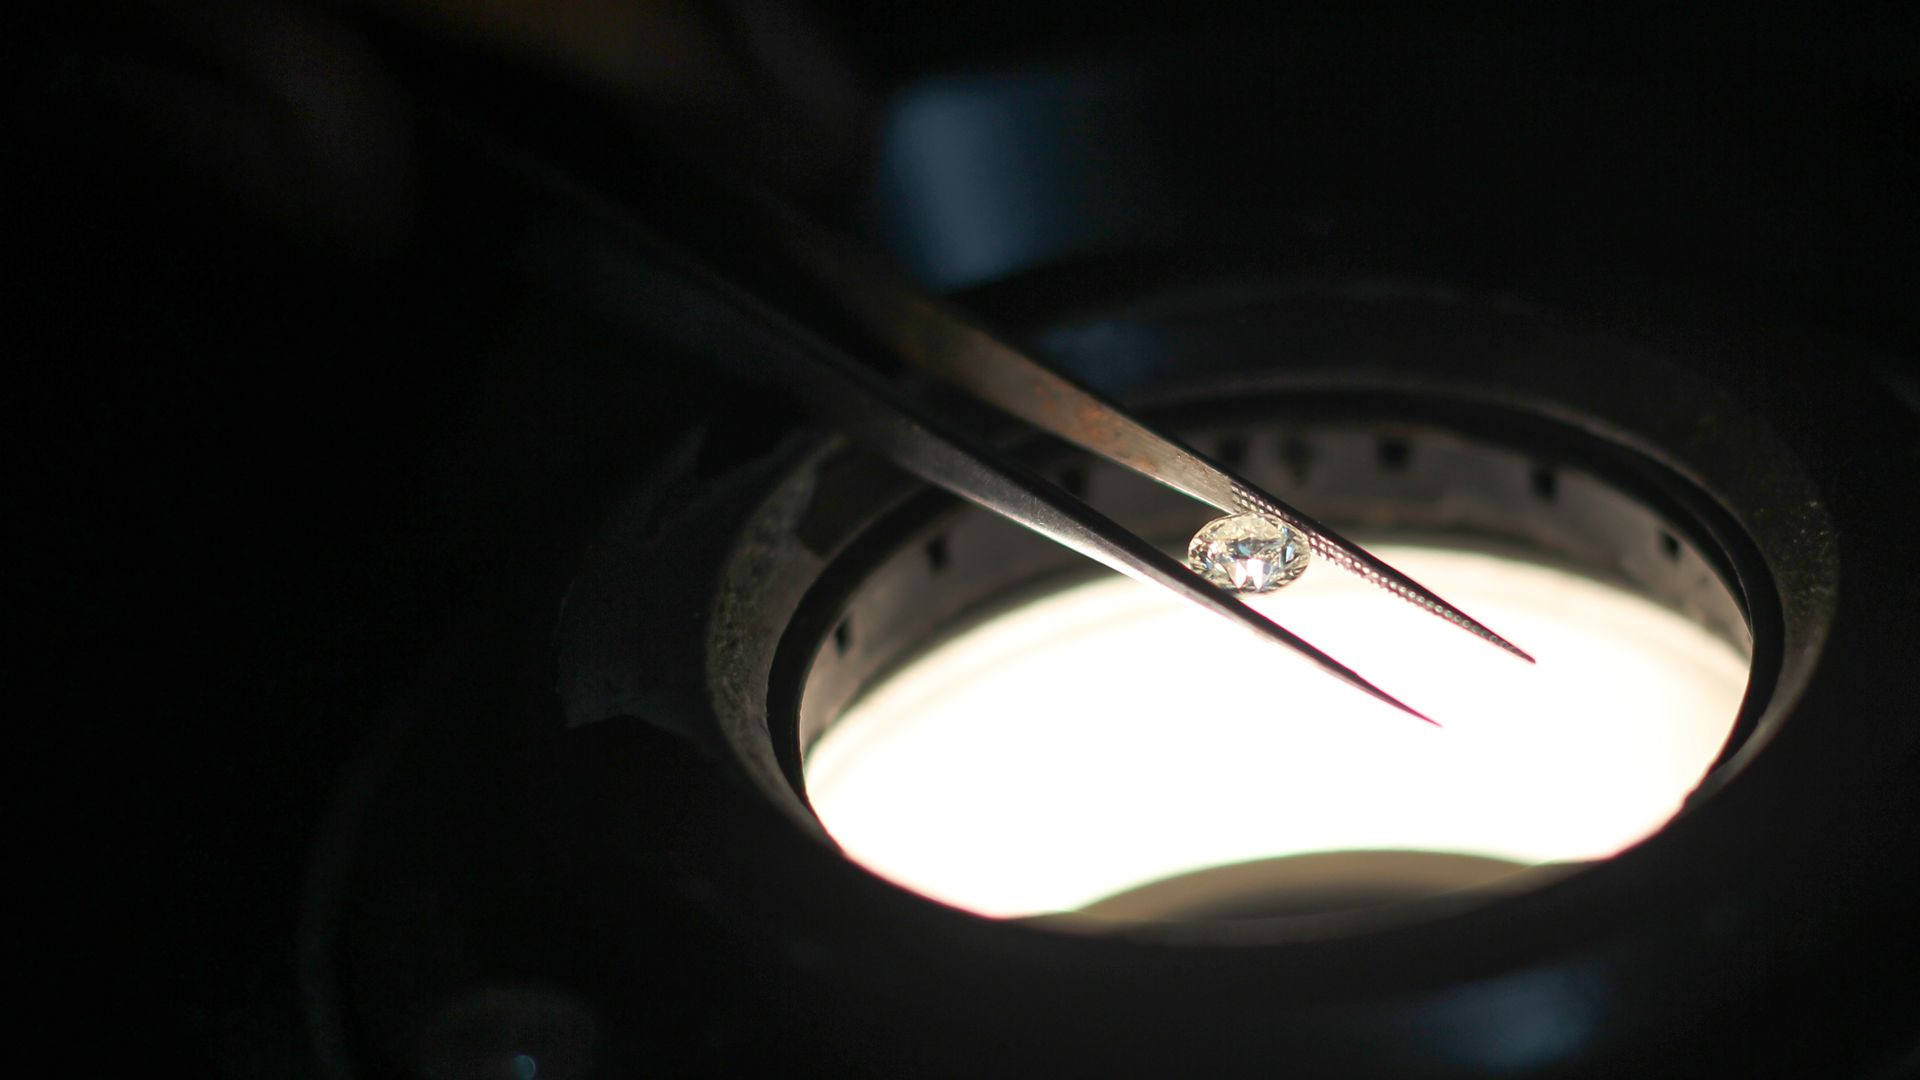 In this image, a small diamond is held between two long tweezers on top of a microscope.